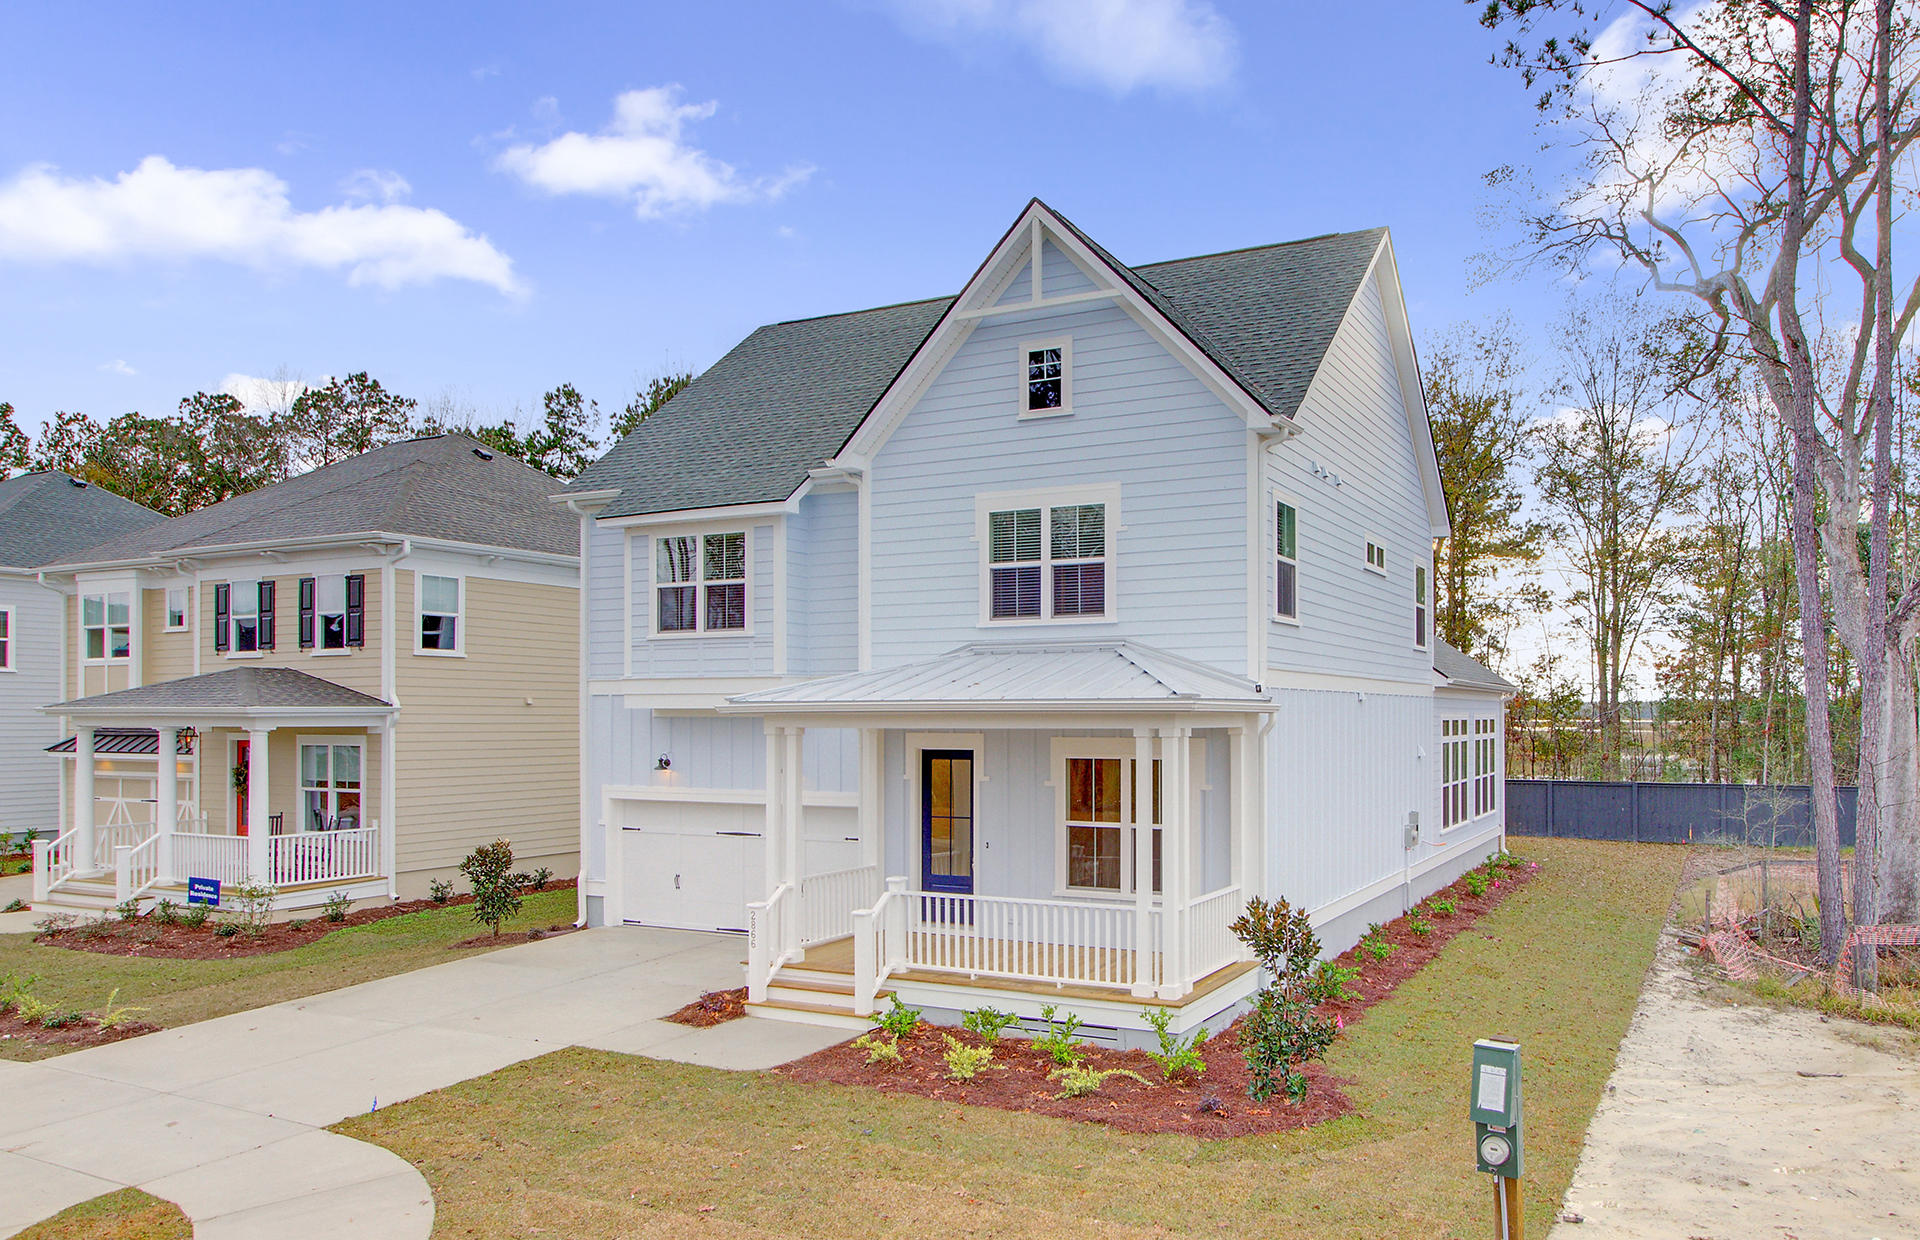 Dunes West Homes For Sale - 2866 Dragonfly, Mount Pleasant, SC - 39